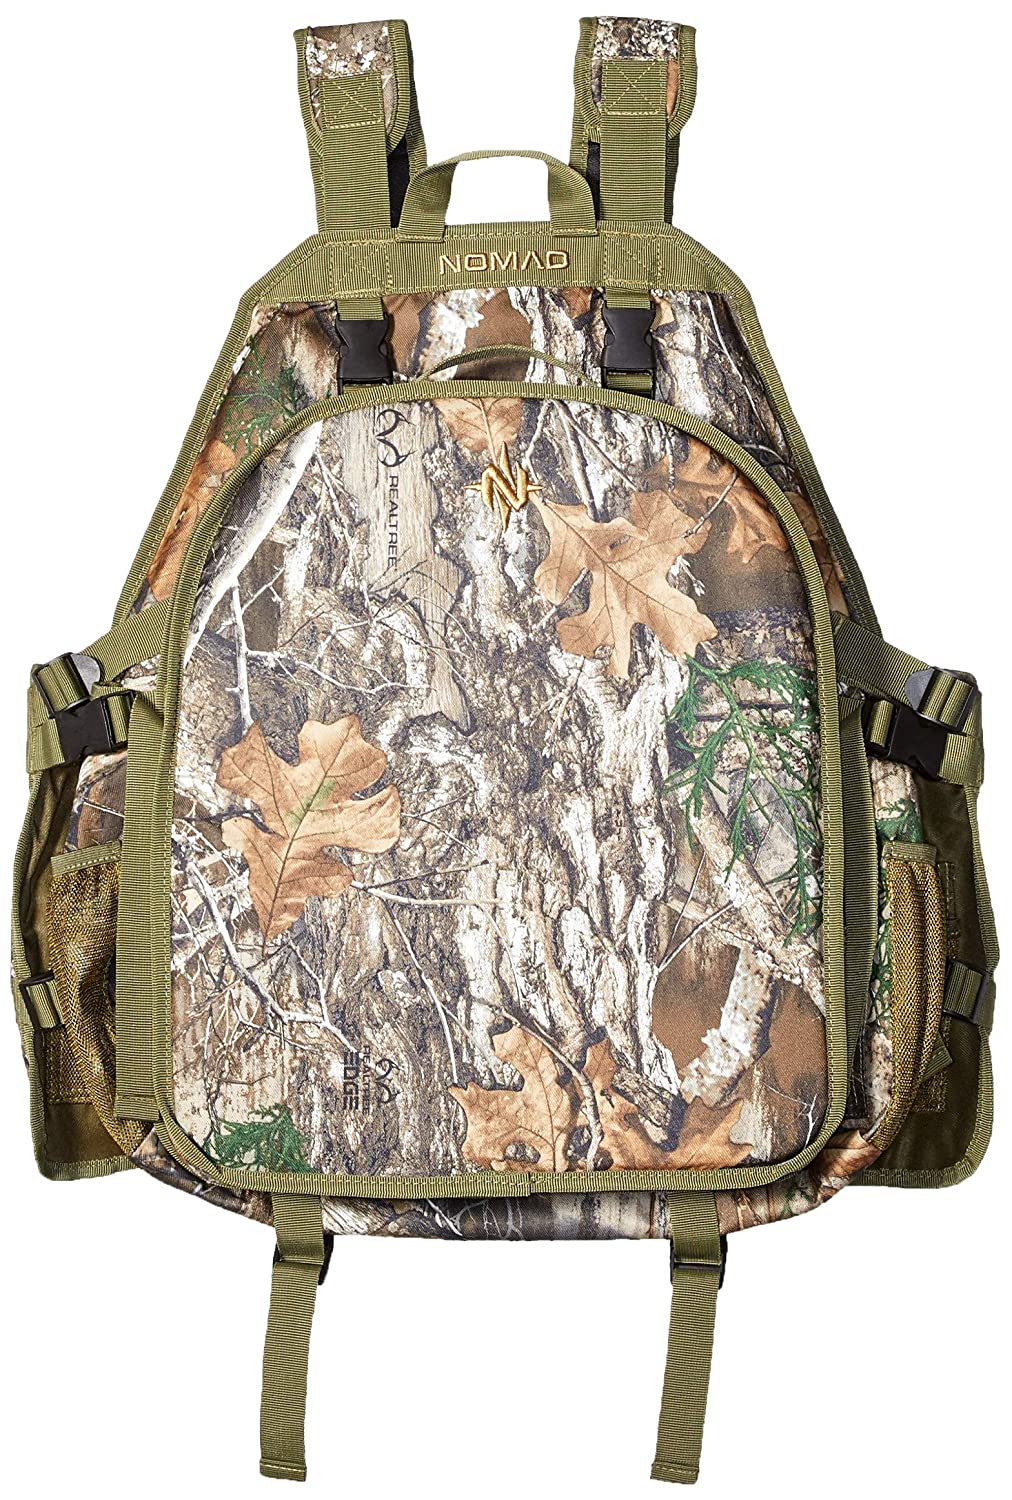 be4596a8e79b1 Amazon.com : Nomad MG Turkey Vest : Sports & Outdoors